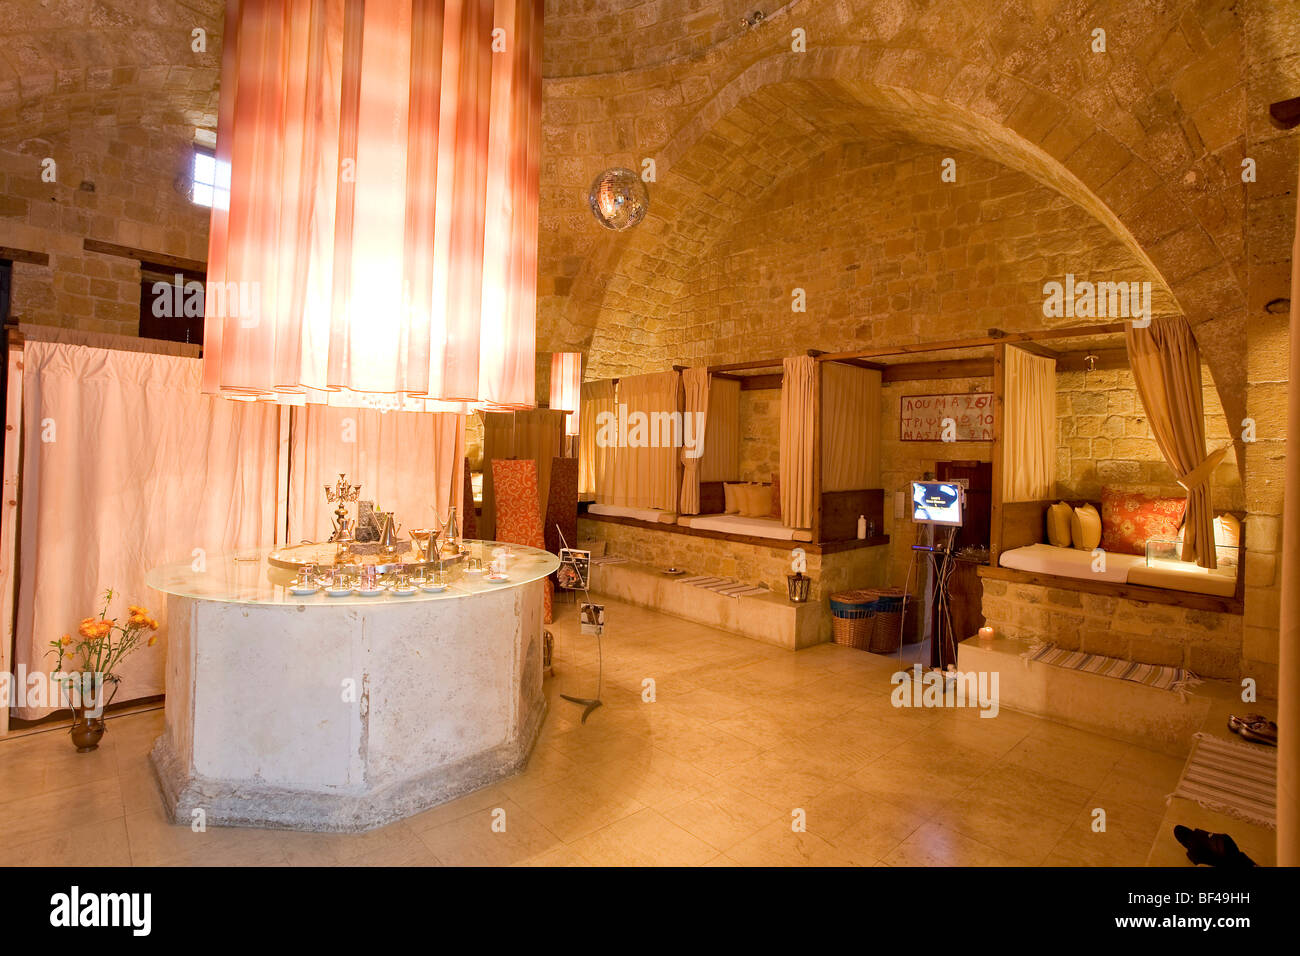 Omeriye baths, hammam, spa, Nicosia, Cyprus, Greece, Europe Stock Photo